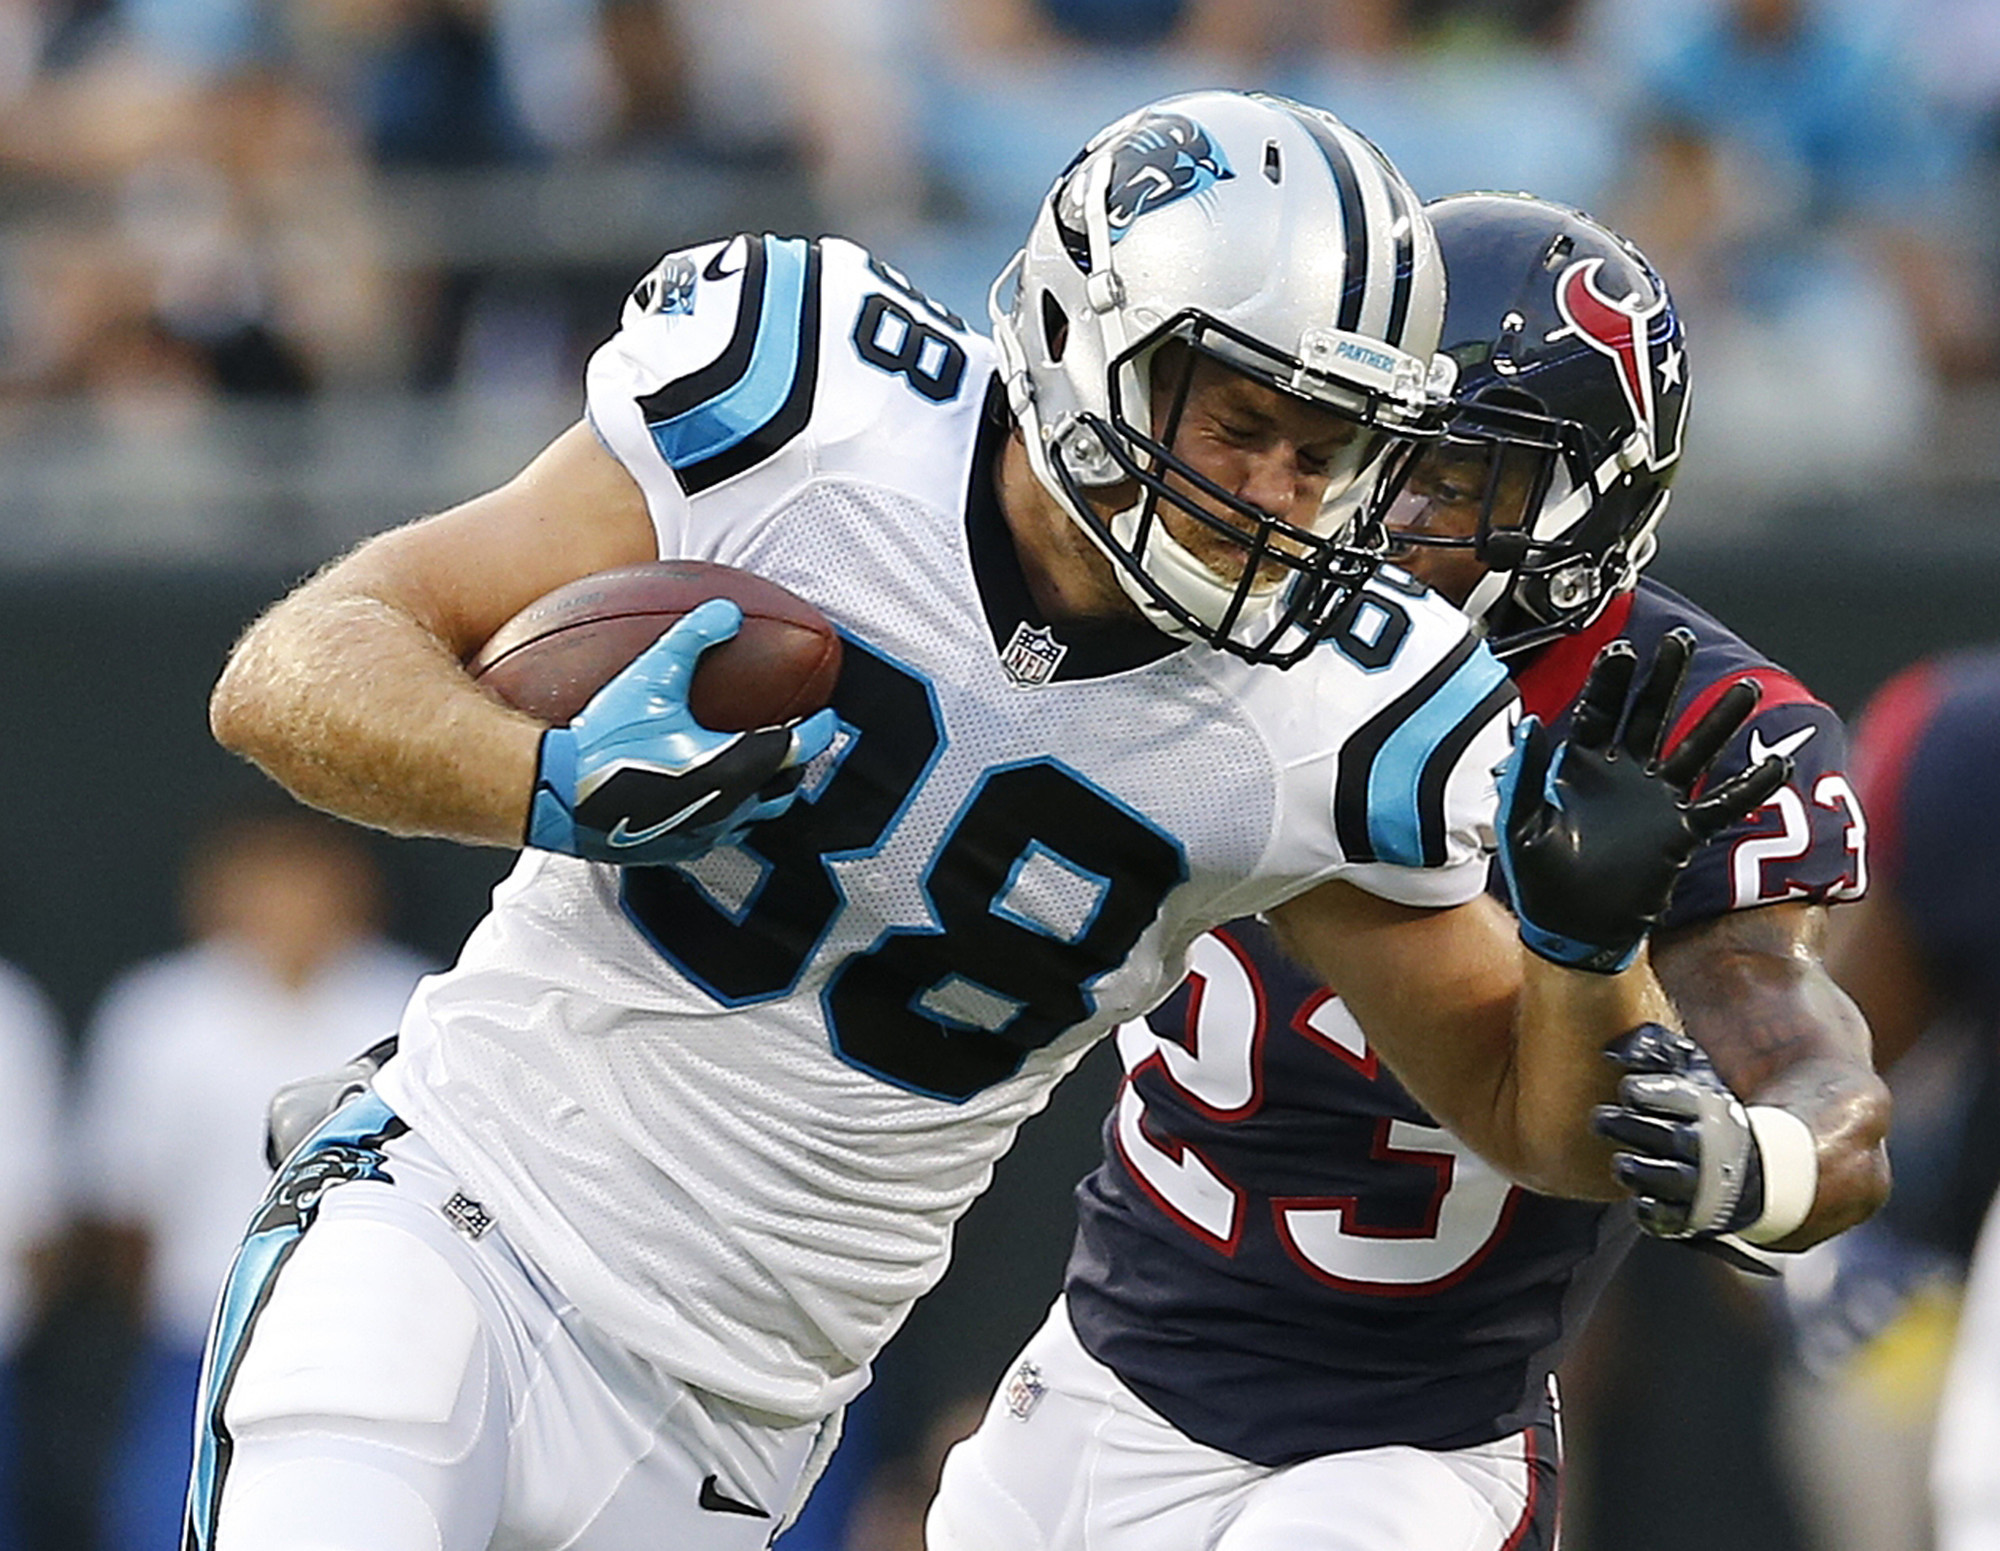 Panthers TE Greg Olsen heads to IR; will miss at least 8 ...